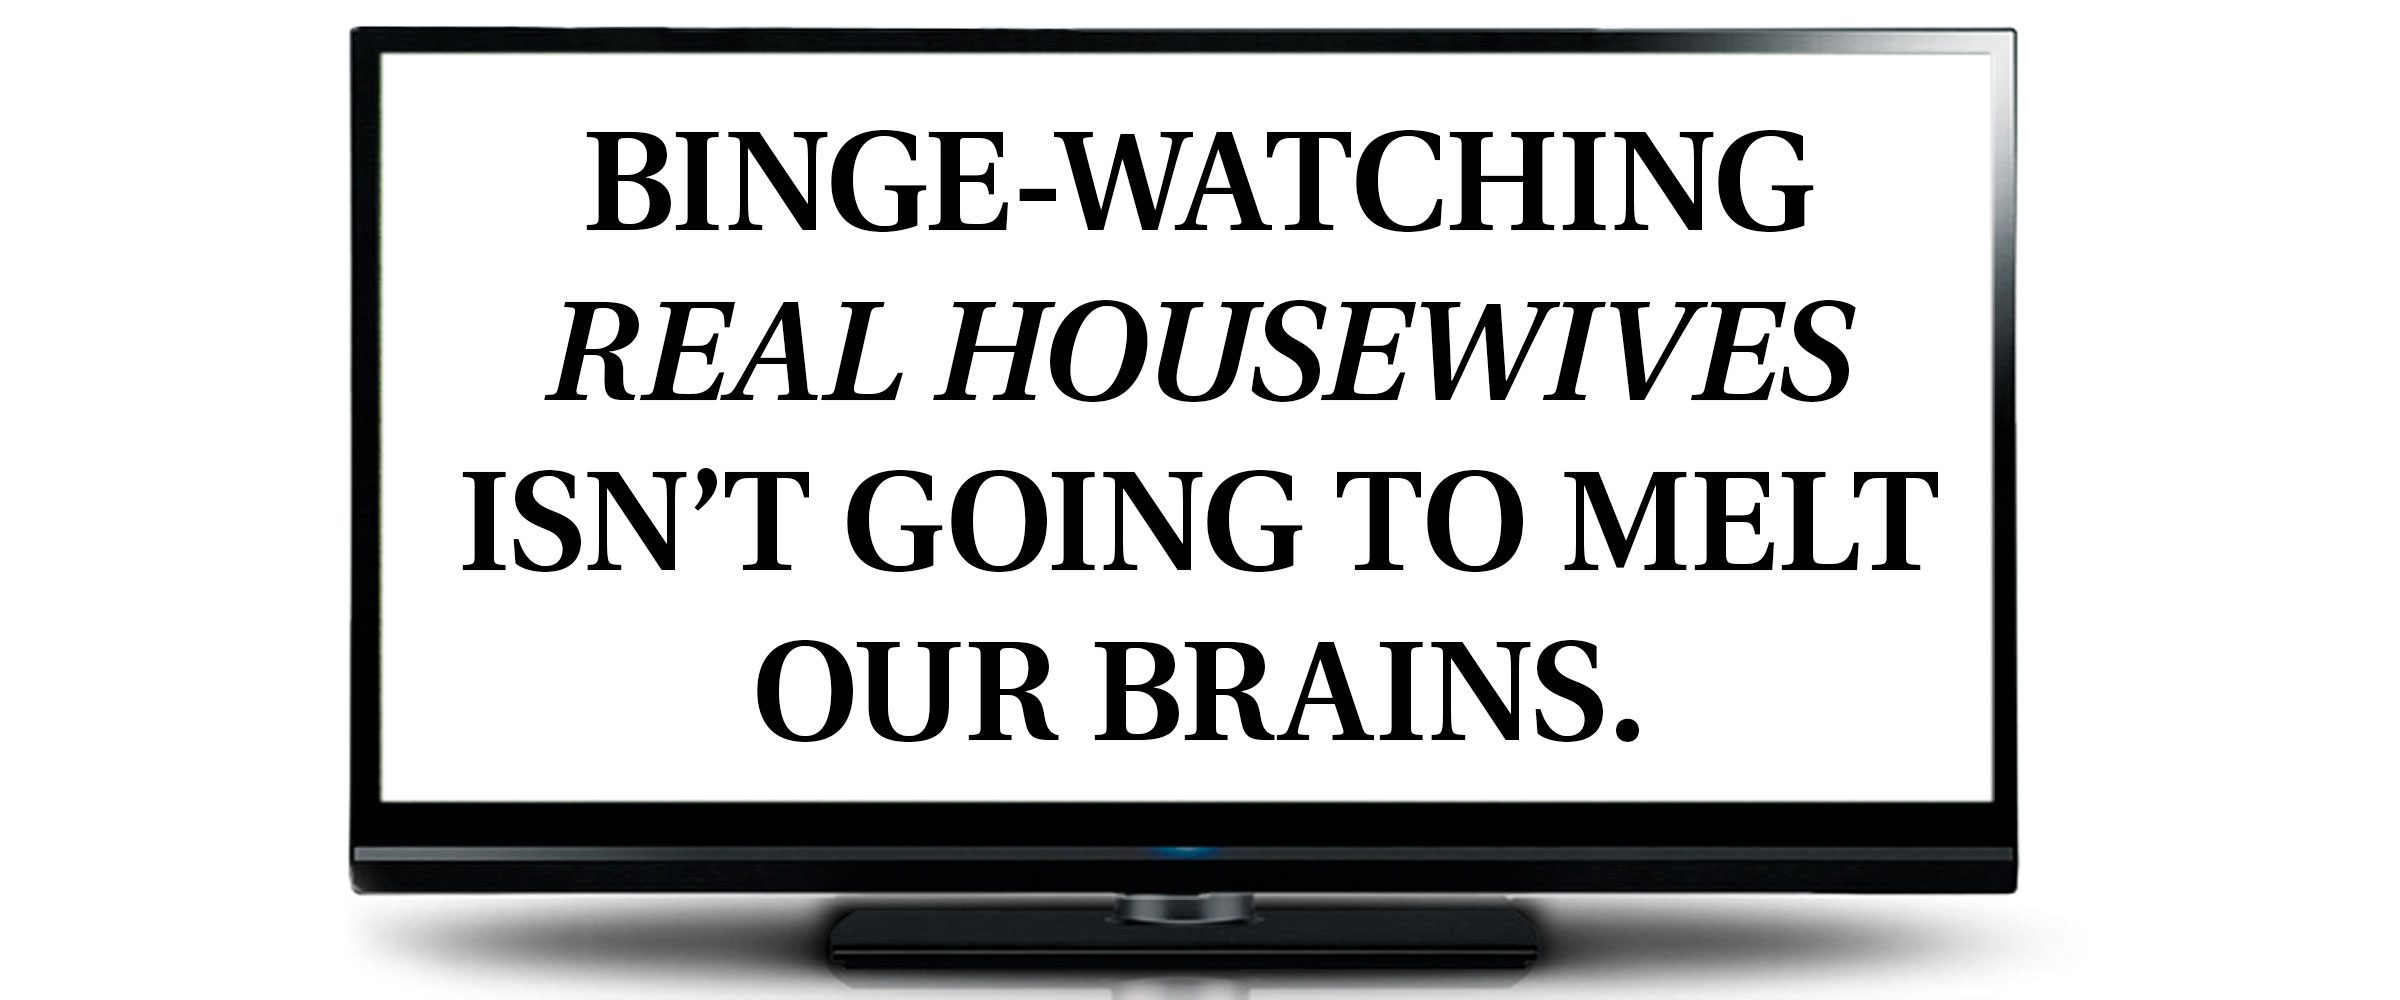 pull quote text inside tv screen frame. Binge-watching Real Housewives isn't going to melt our brains.